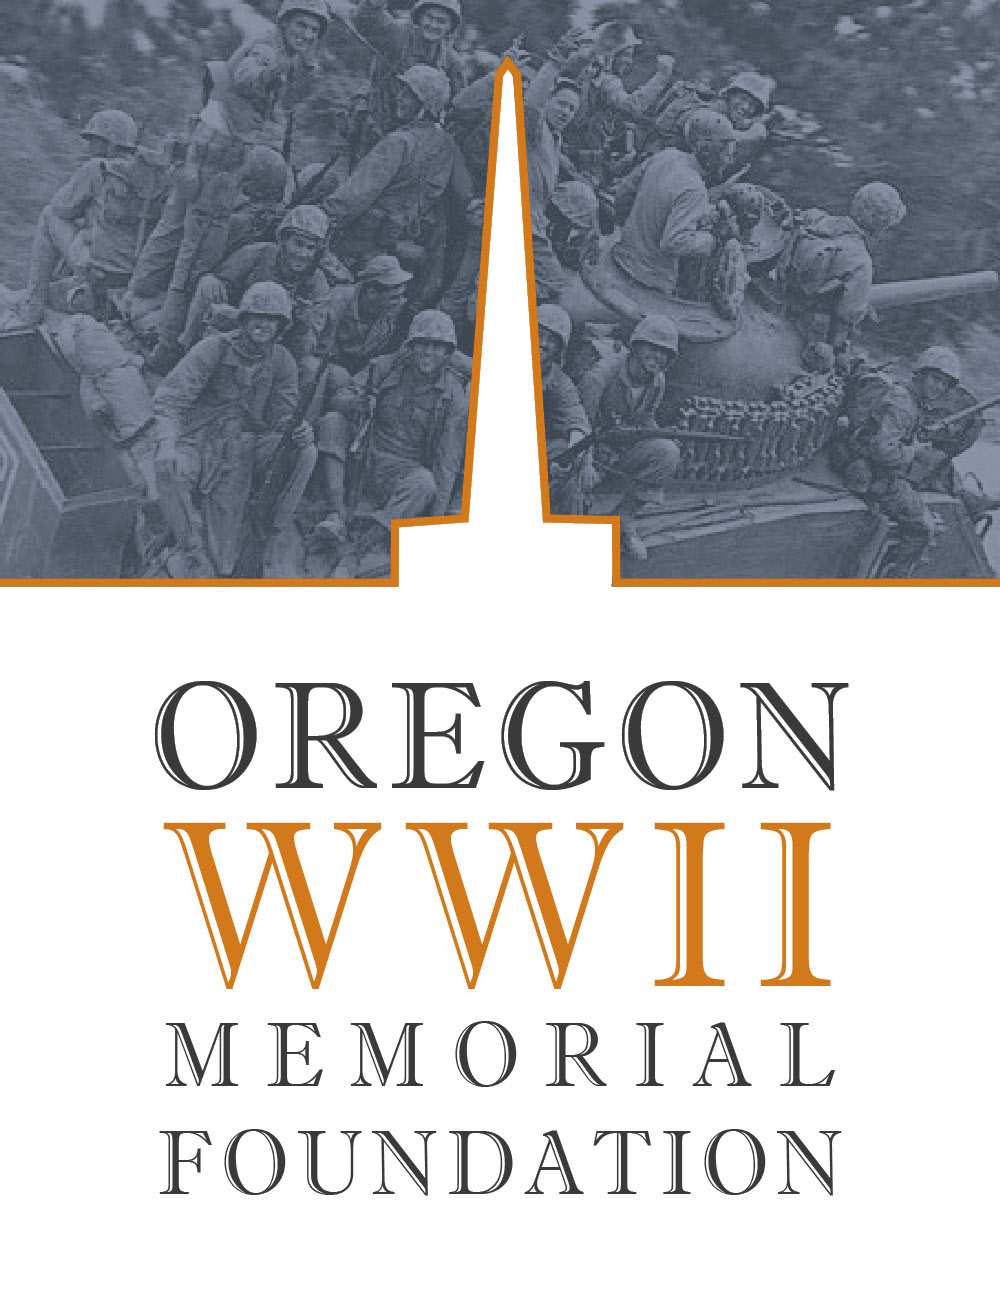 Oregon WWII Memorial Foundation